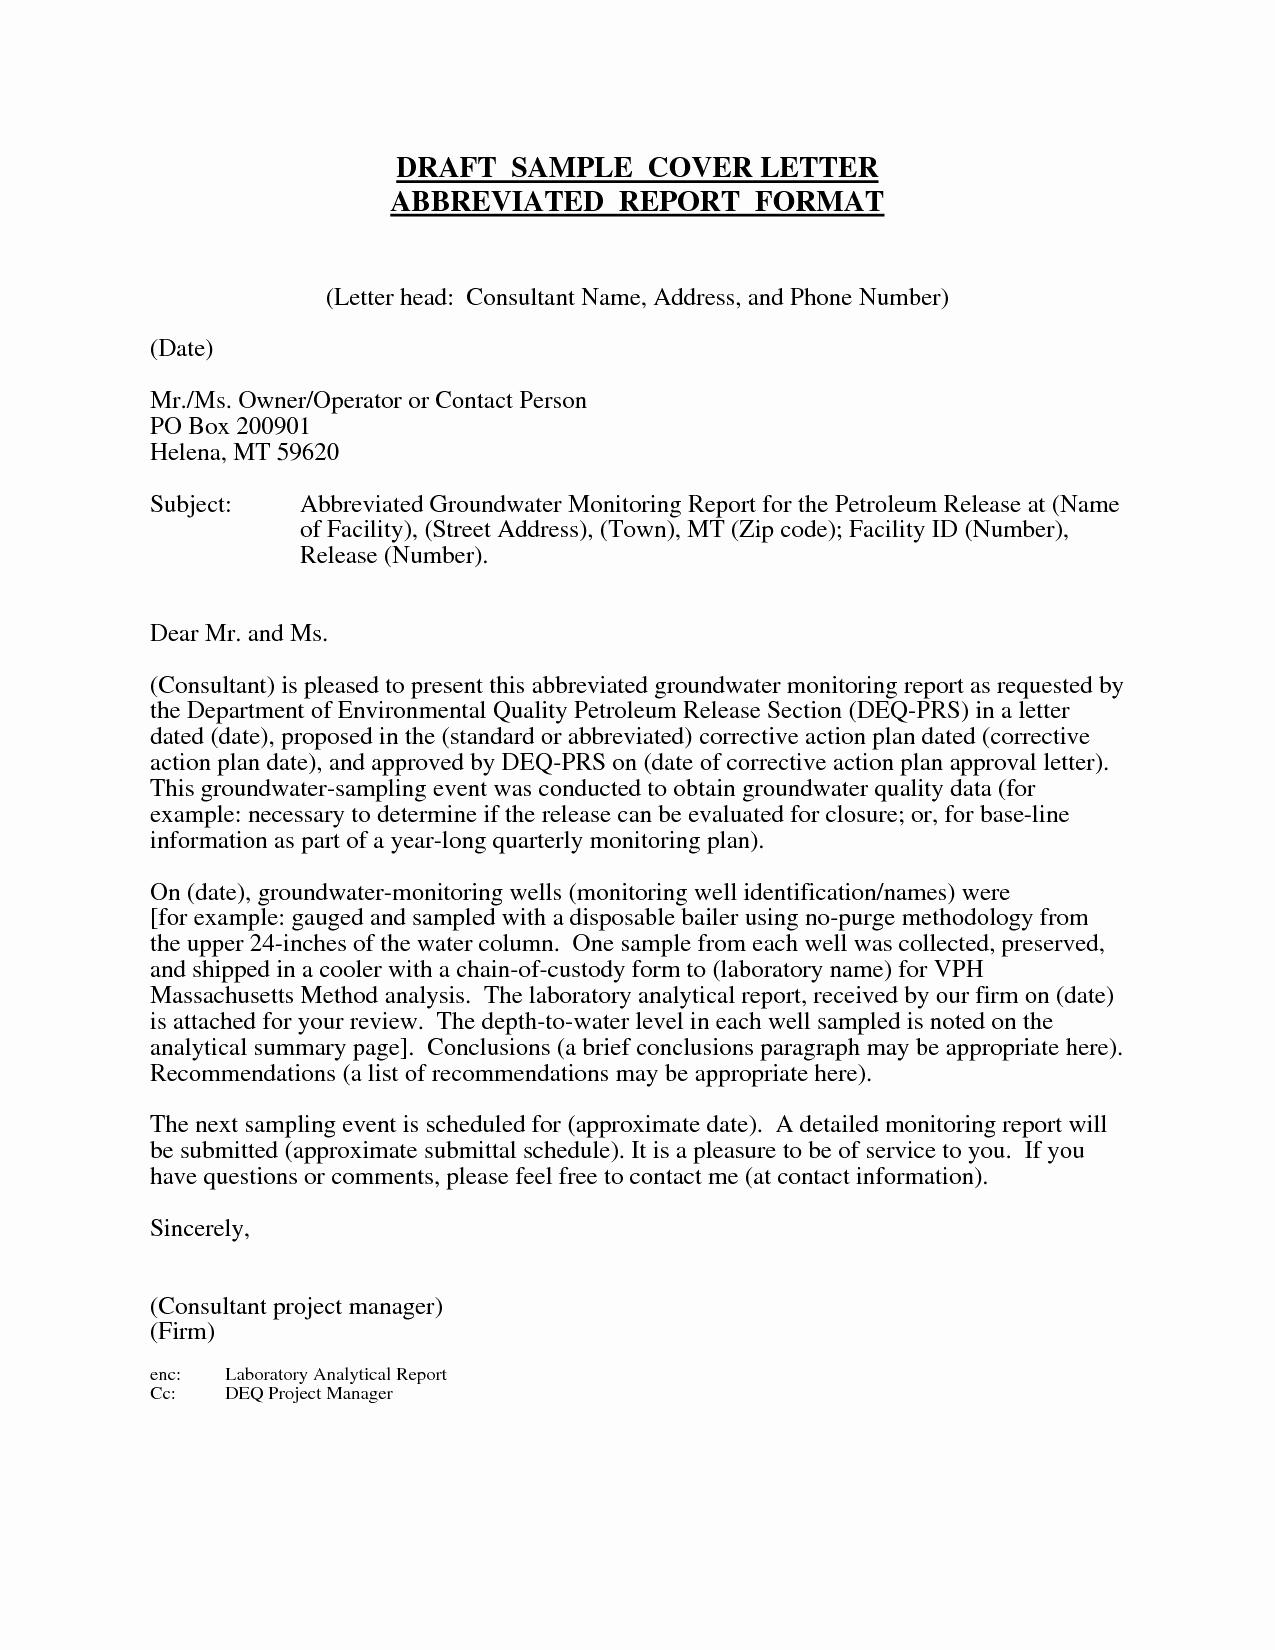 Executive assistant Resume - Personal assistant Cover Letter Template Gallery